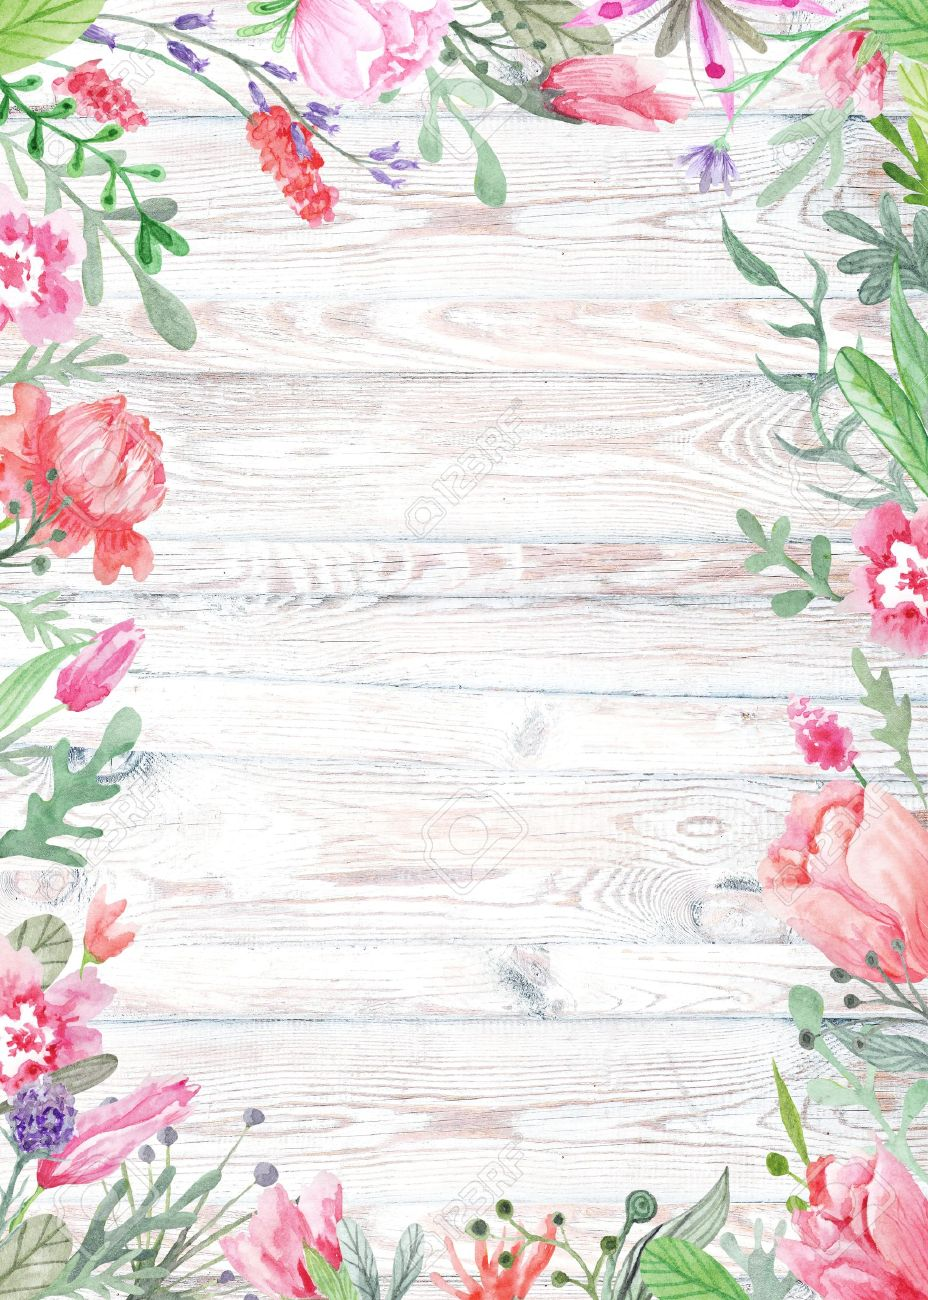 Shabby Chic Vintage Card Template For Wedding Summer Event Invitation Menu Table